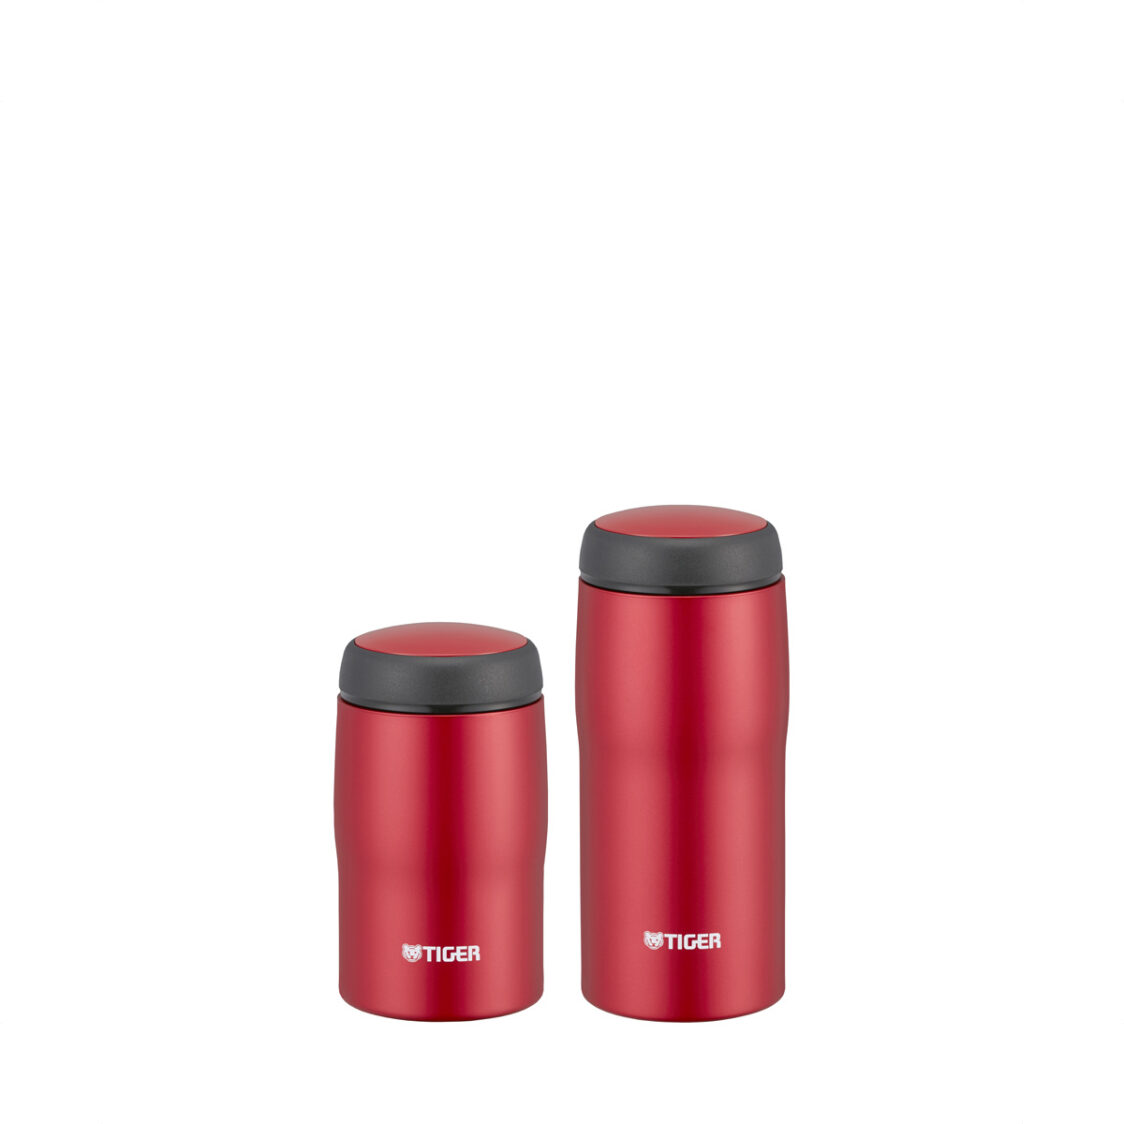 Tiger 240ml360ml Double Stainless Steel Mug Set Made In Japan Matte Red